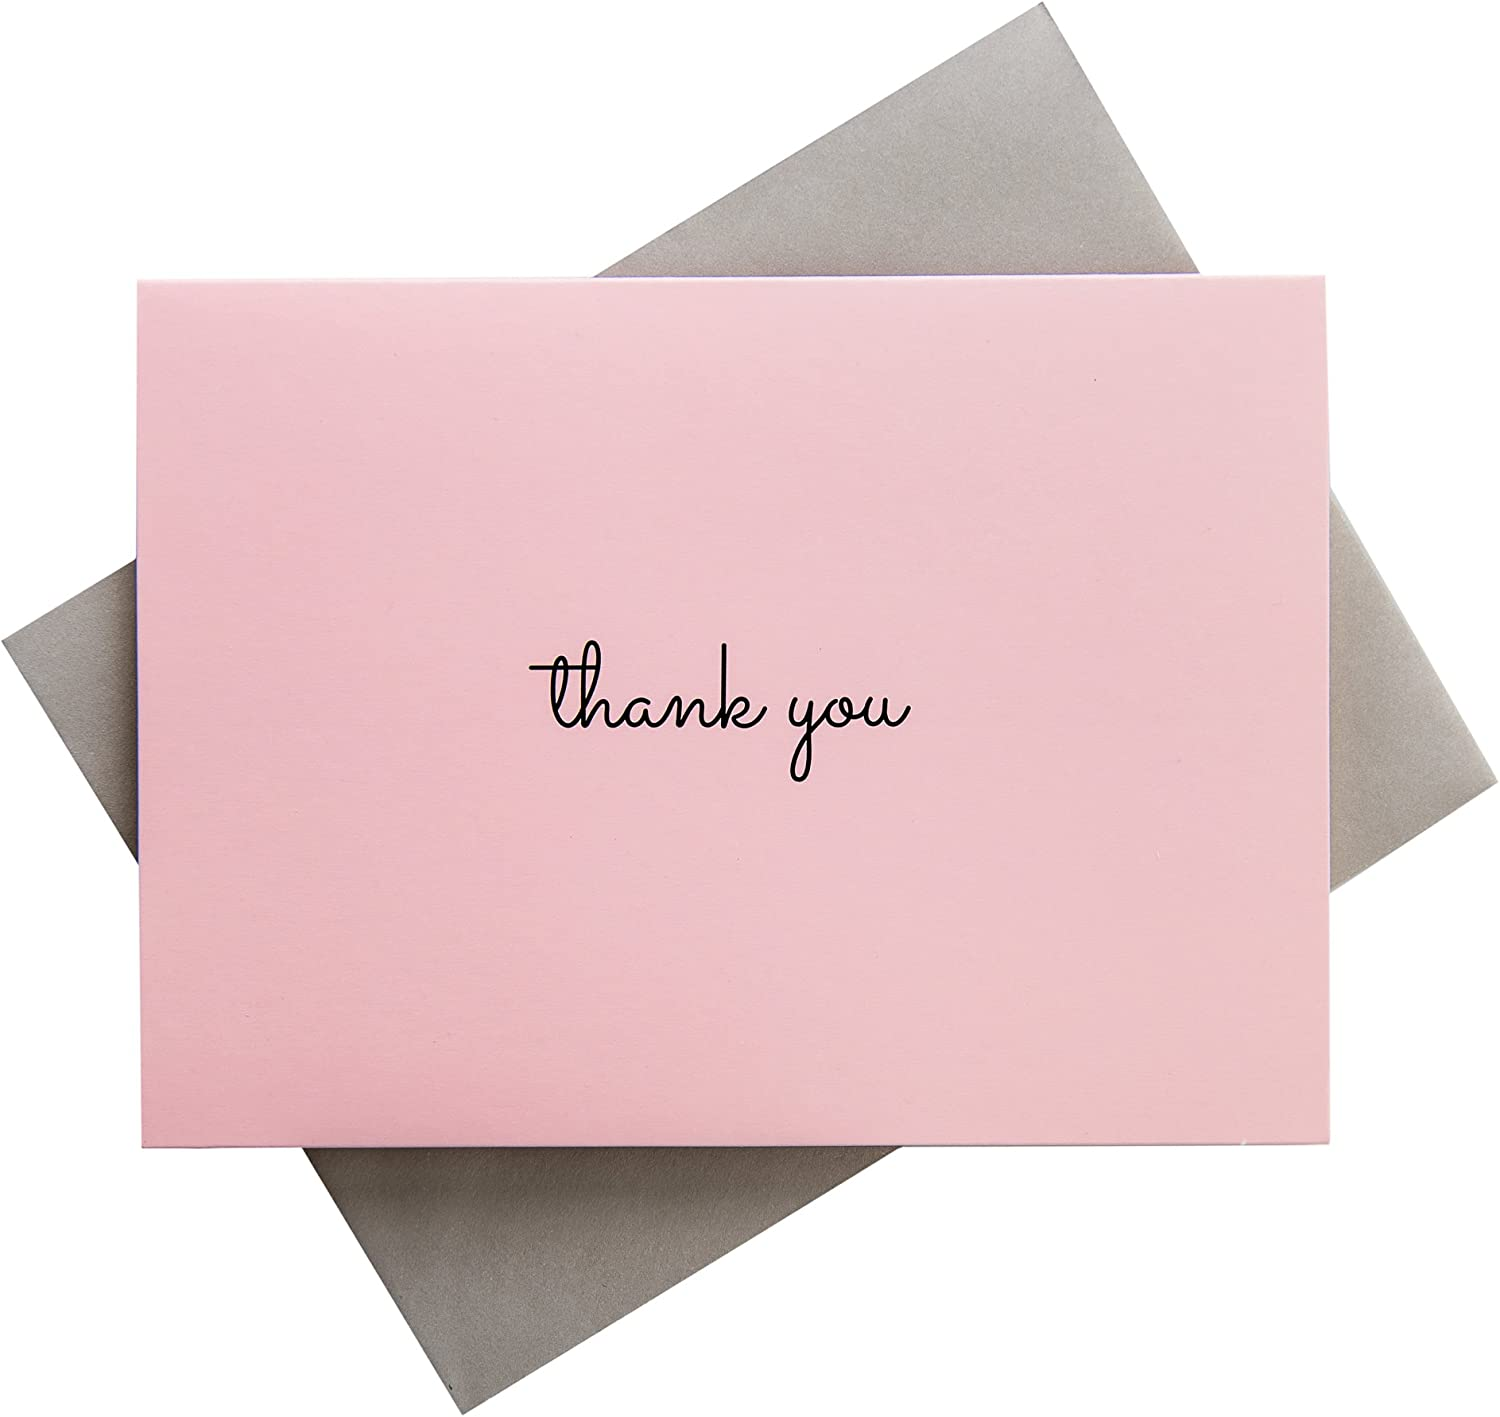 lot of 12 small envelopes pink tones and cards thank you gift,